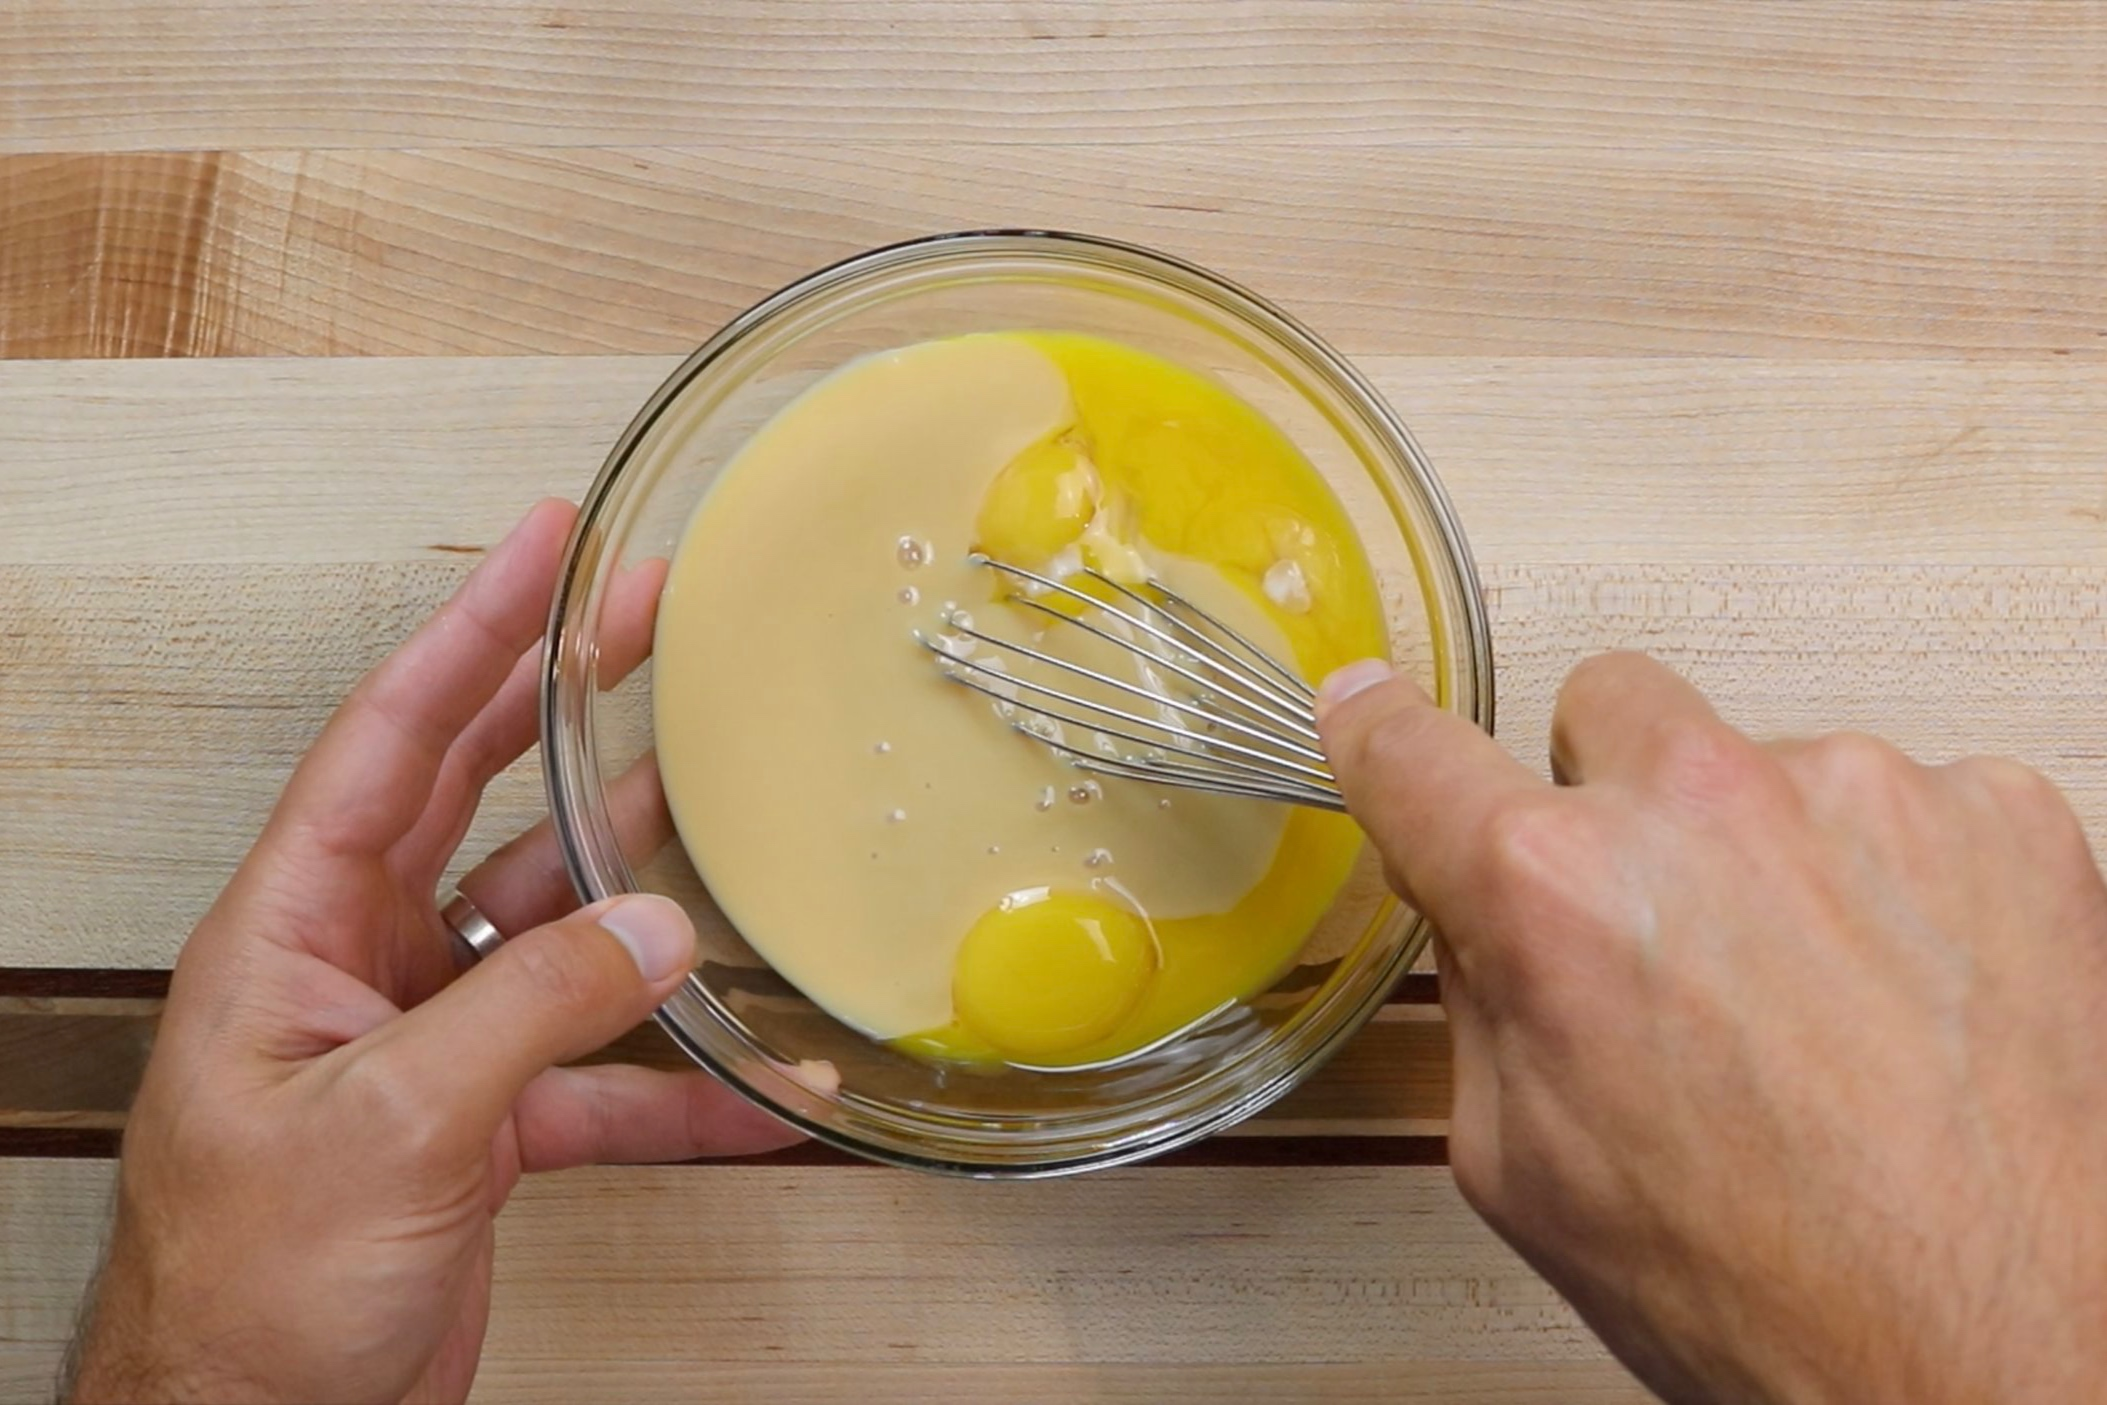 2. In a medium bowl, add the egg yolks and sweetened condensed milk. Whisk until combined. Set aside. -